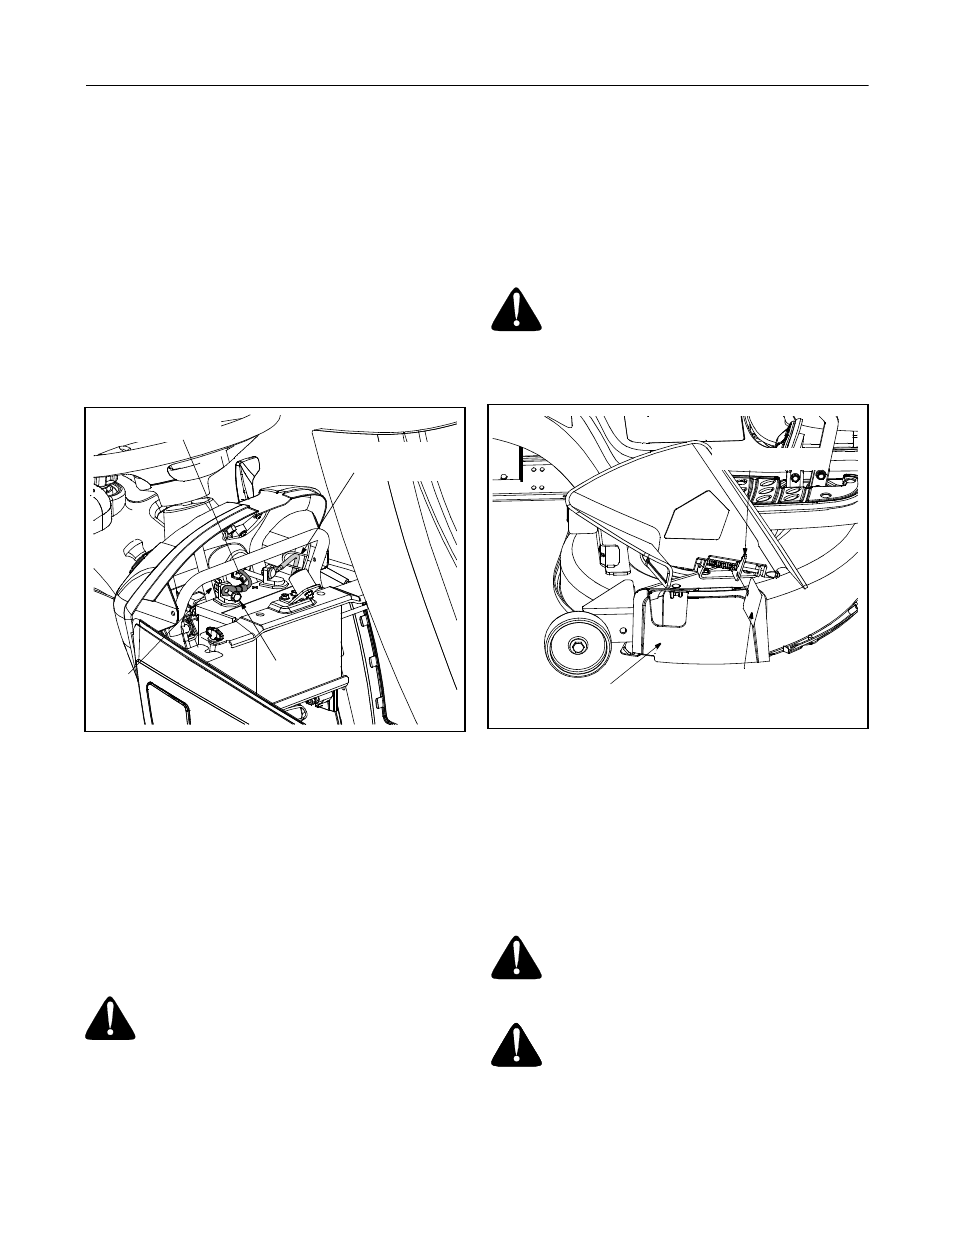 attaching the battery cables gas and oil fill up shipping brace rh manualsdir com Cub Cadet Zero Turn Manuals 1961 Cub Cadet Original Manual